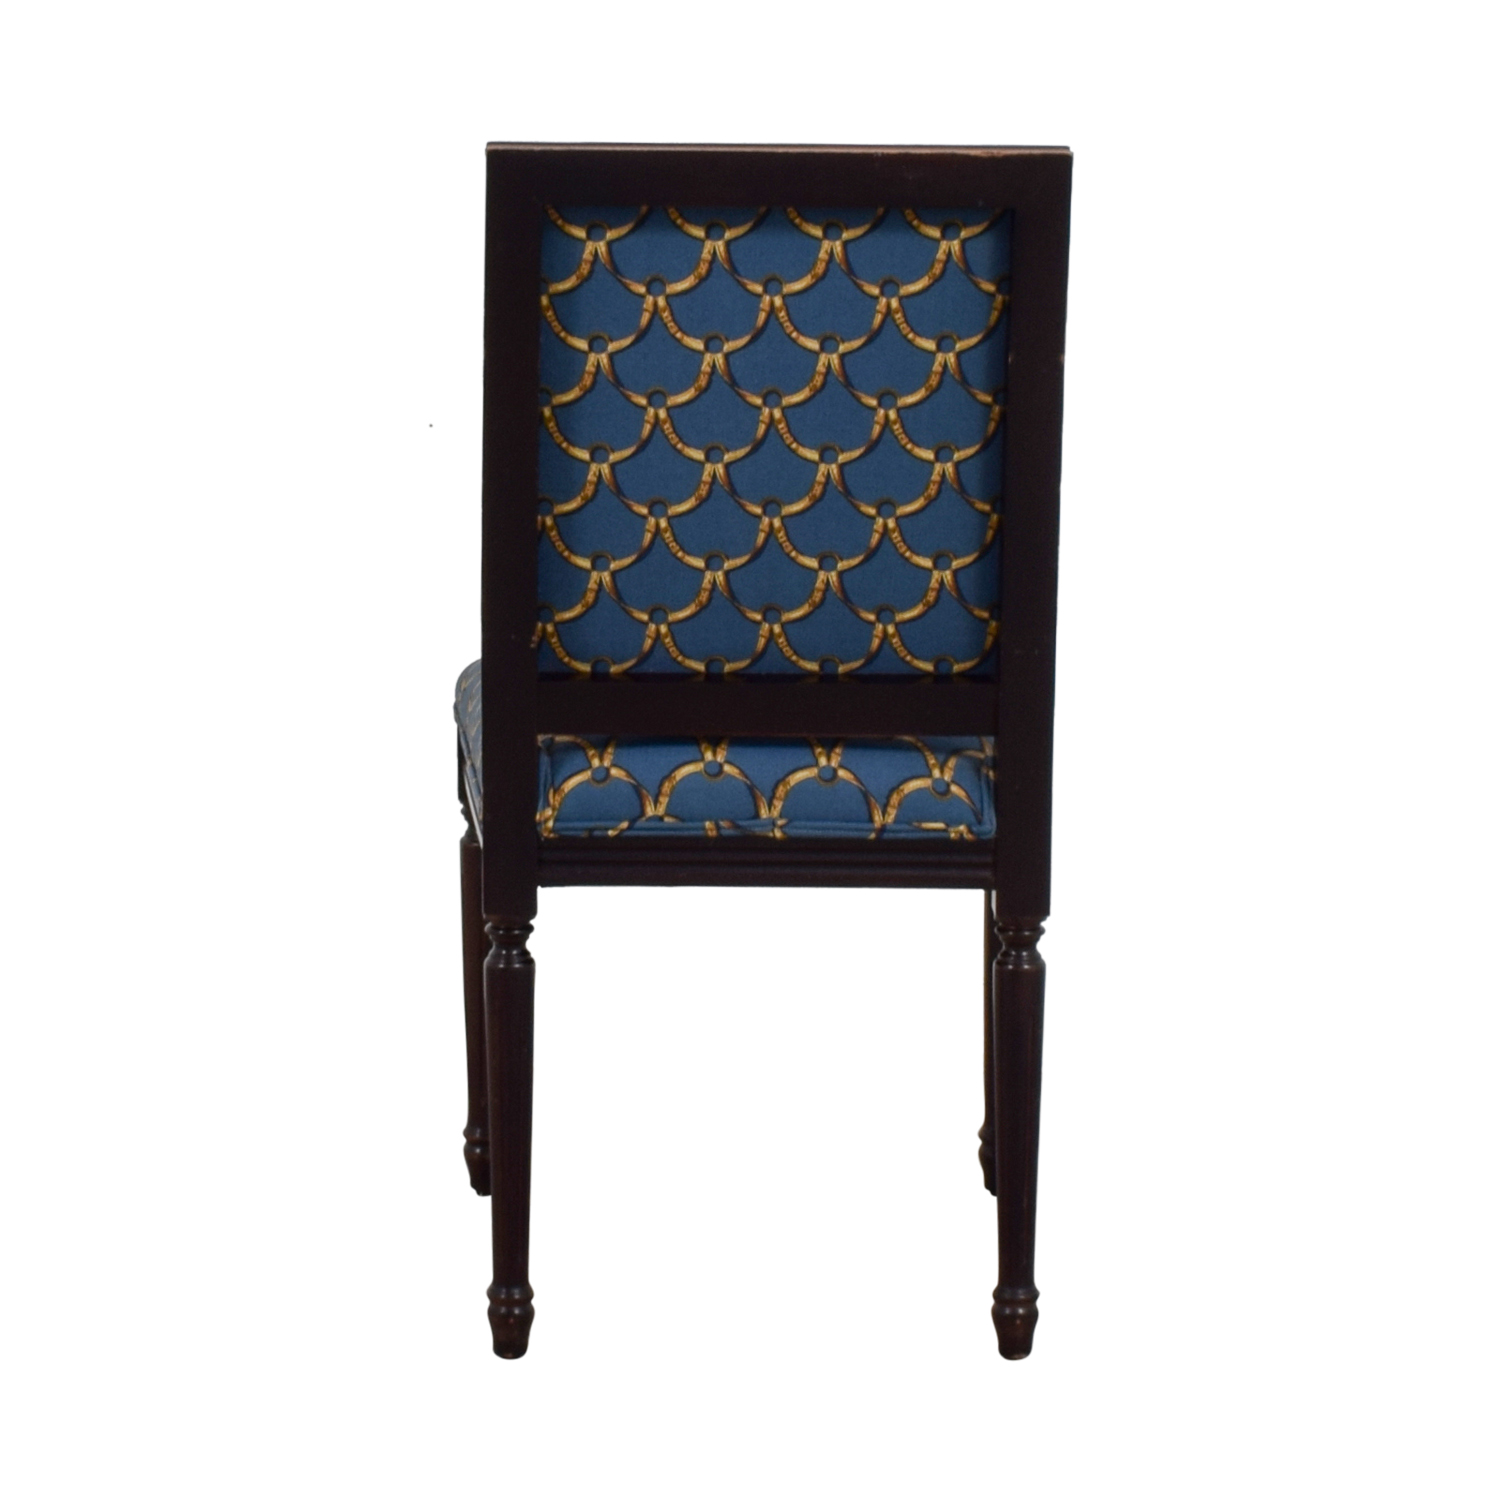 Ballard Designs Ballard Designs Blue and Gold Upholstered Side Chair used